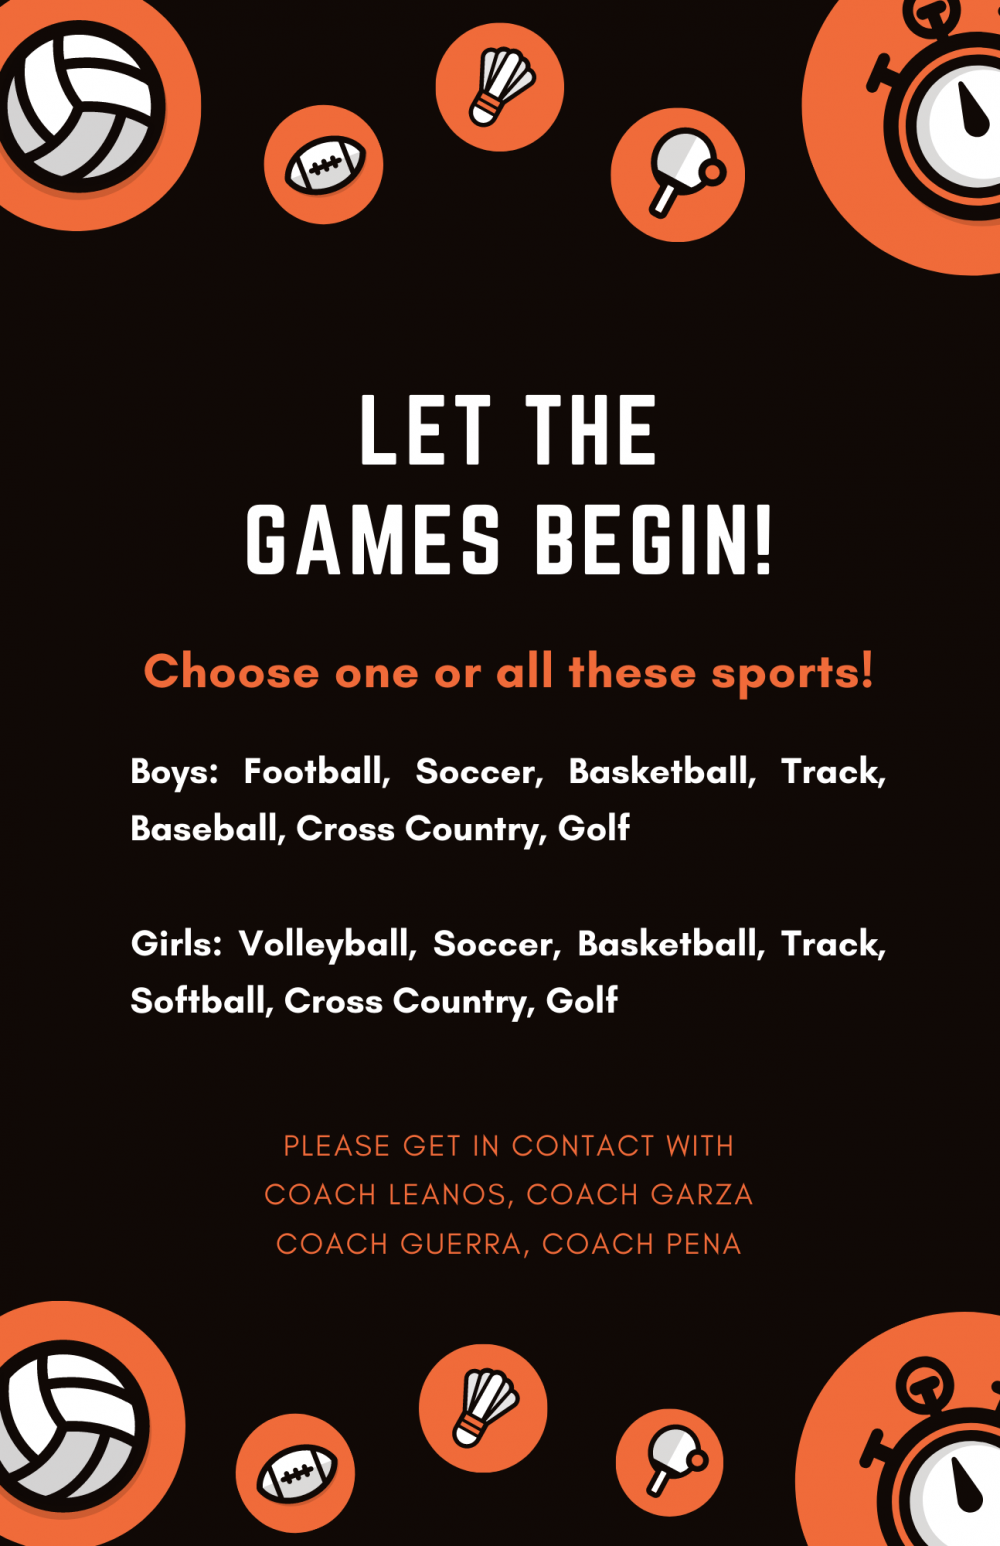 Join a sport and come be part of our athletic team!